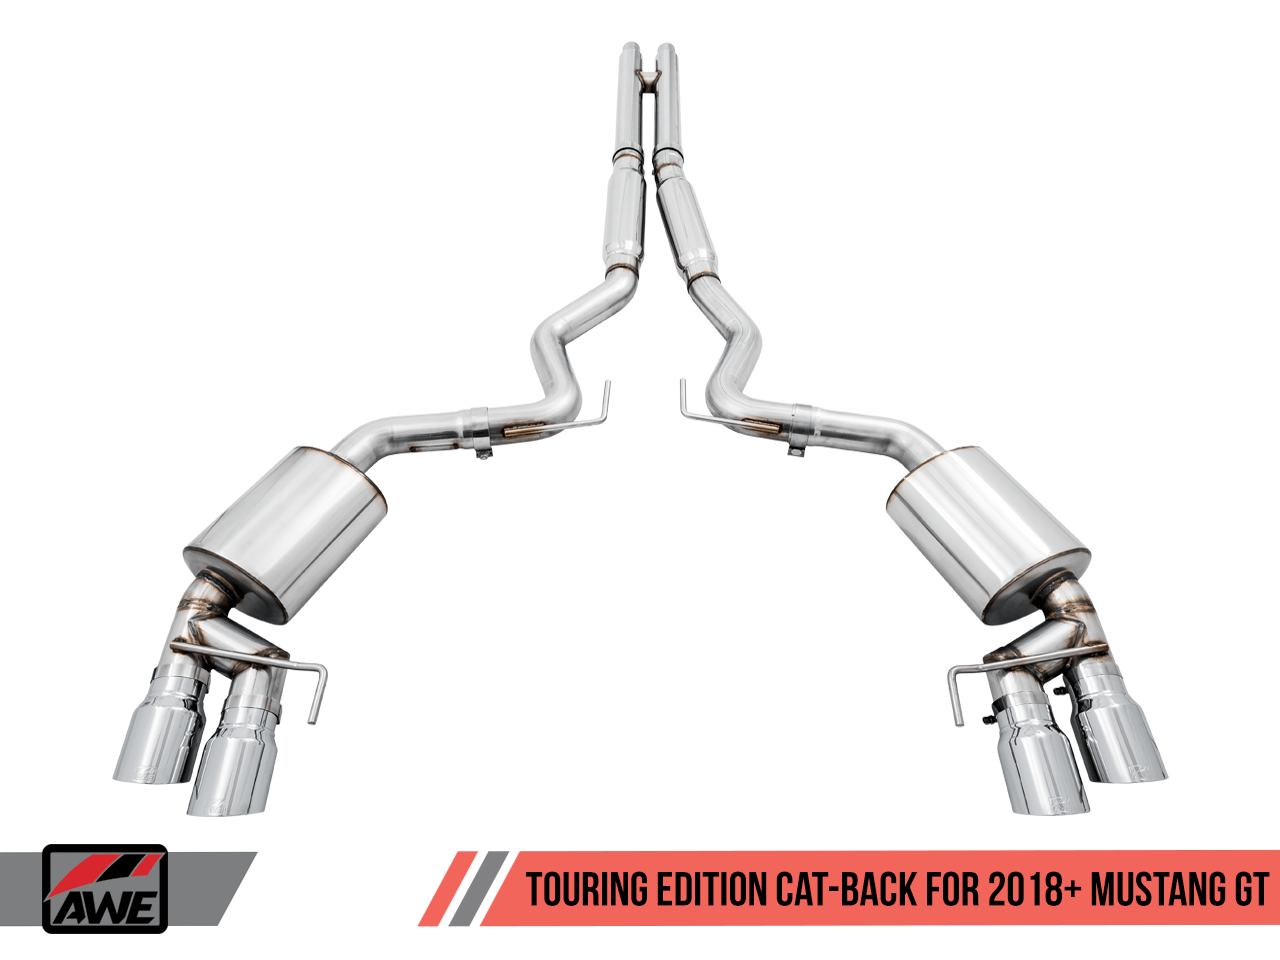 AWE Touring Catback Exhaust (Black Tips) For 18+ Ford Mustang GT - 3015-43106